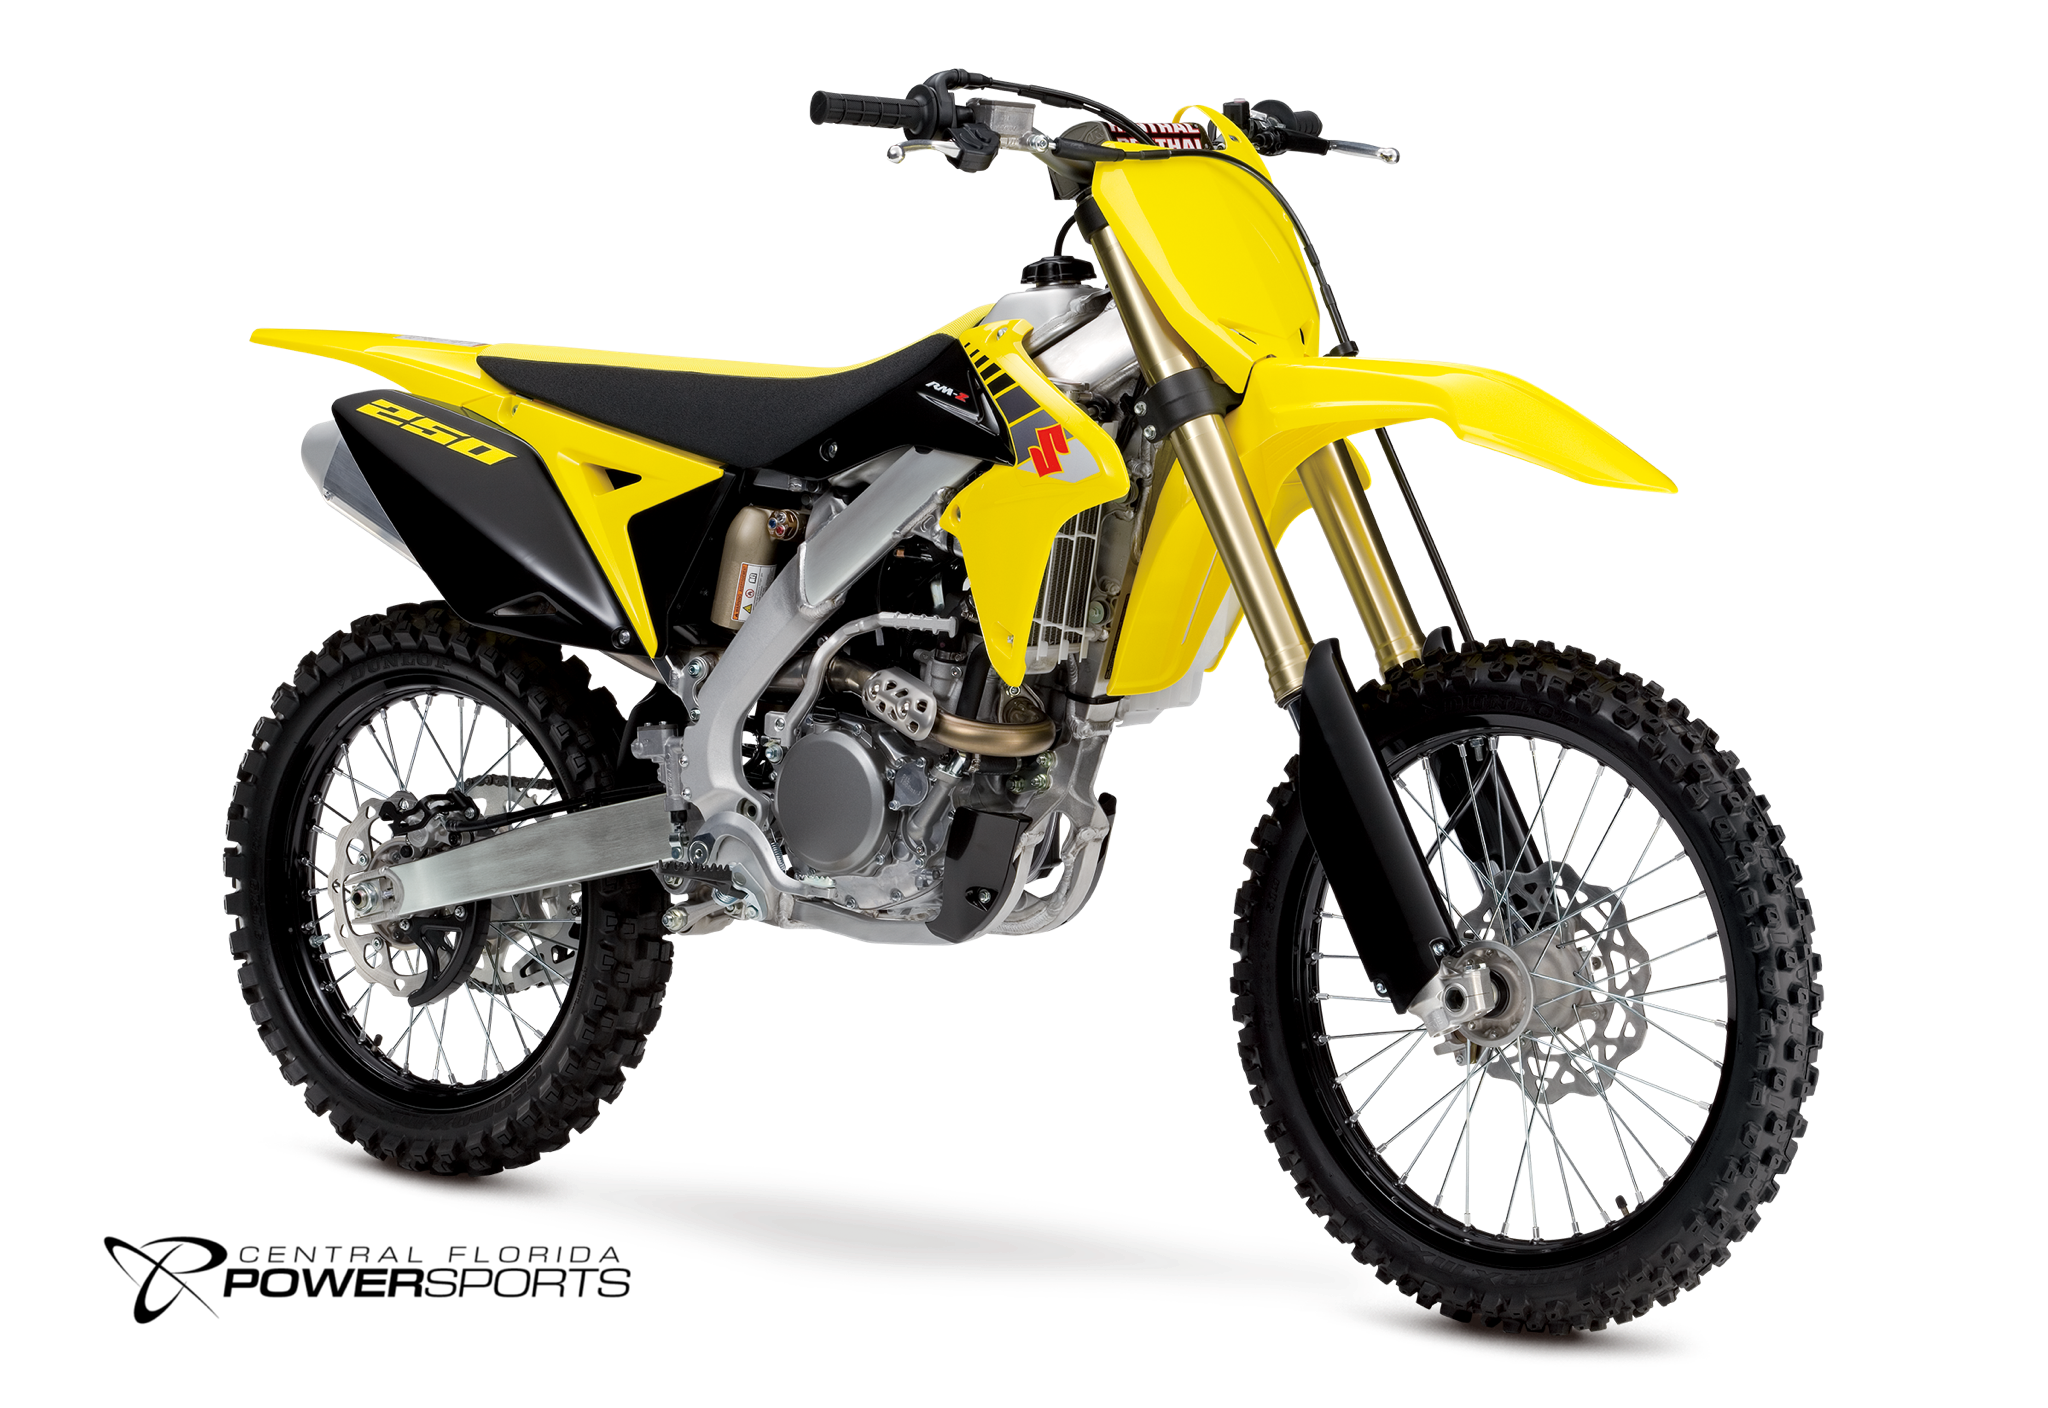 2017 suzuki | central florida powersports